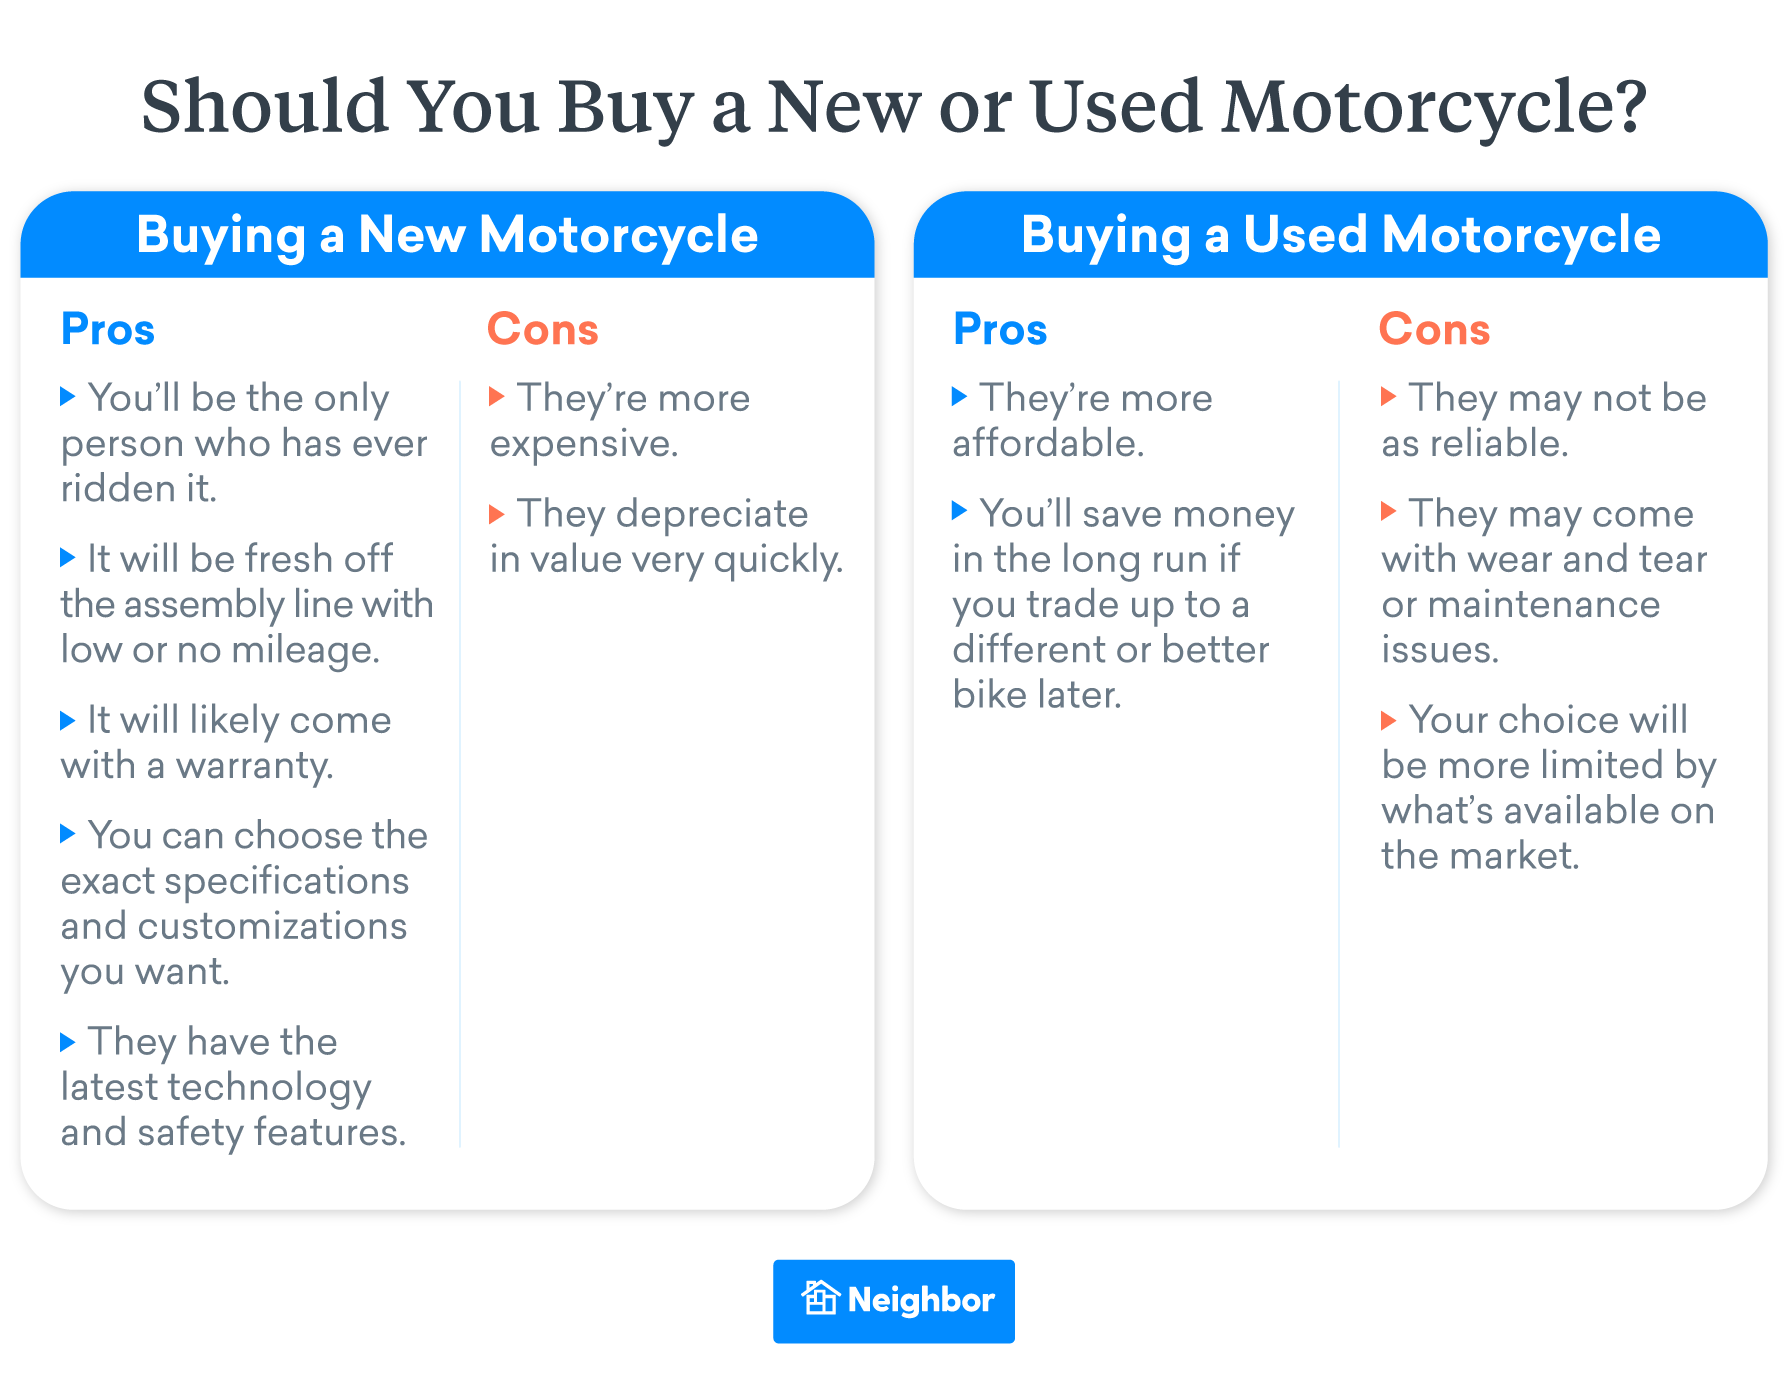 Buying a New vs. Used Motorcycle